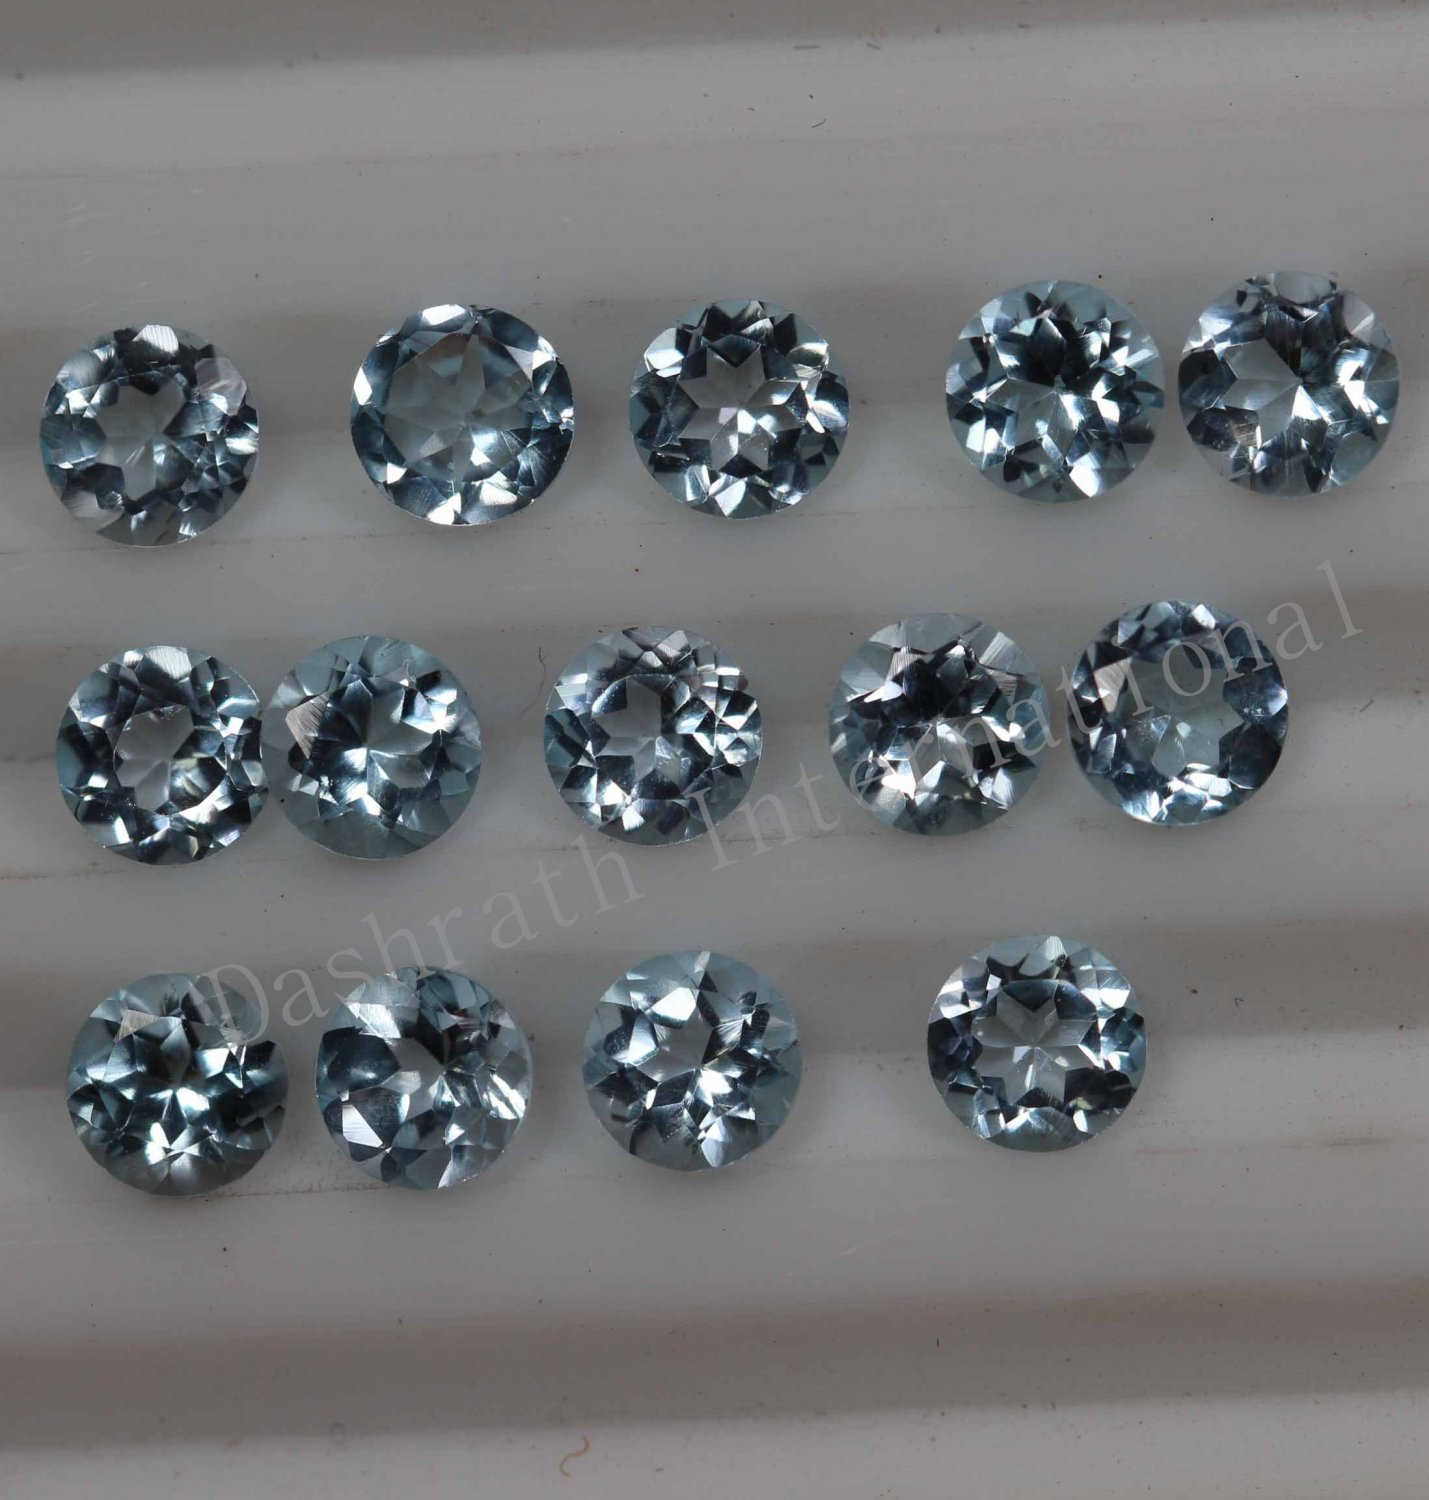 3mmNatural Sky Blue Topaz Faceted Cut Round 10 Pieces Lot Blue Color  Top Quality Loose Gemstone